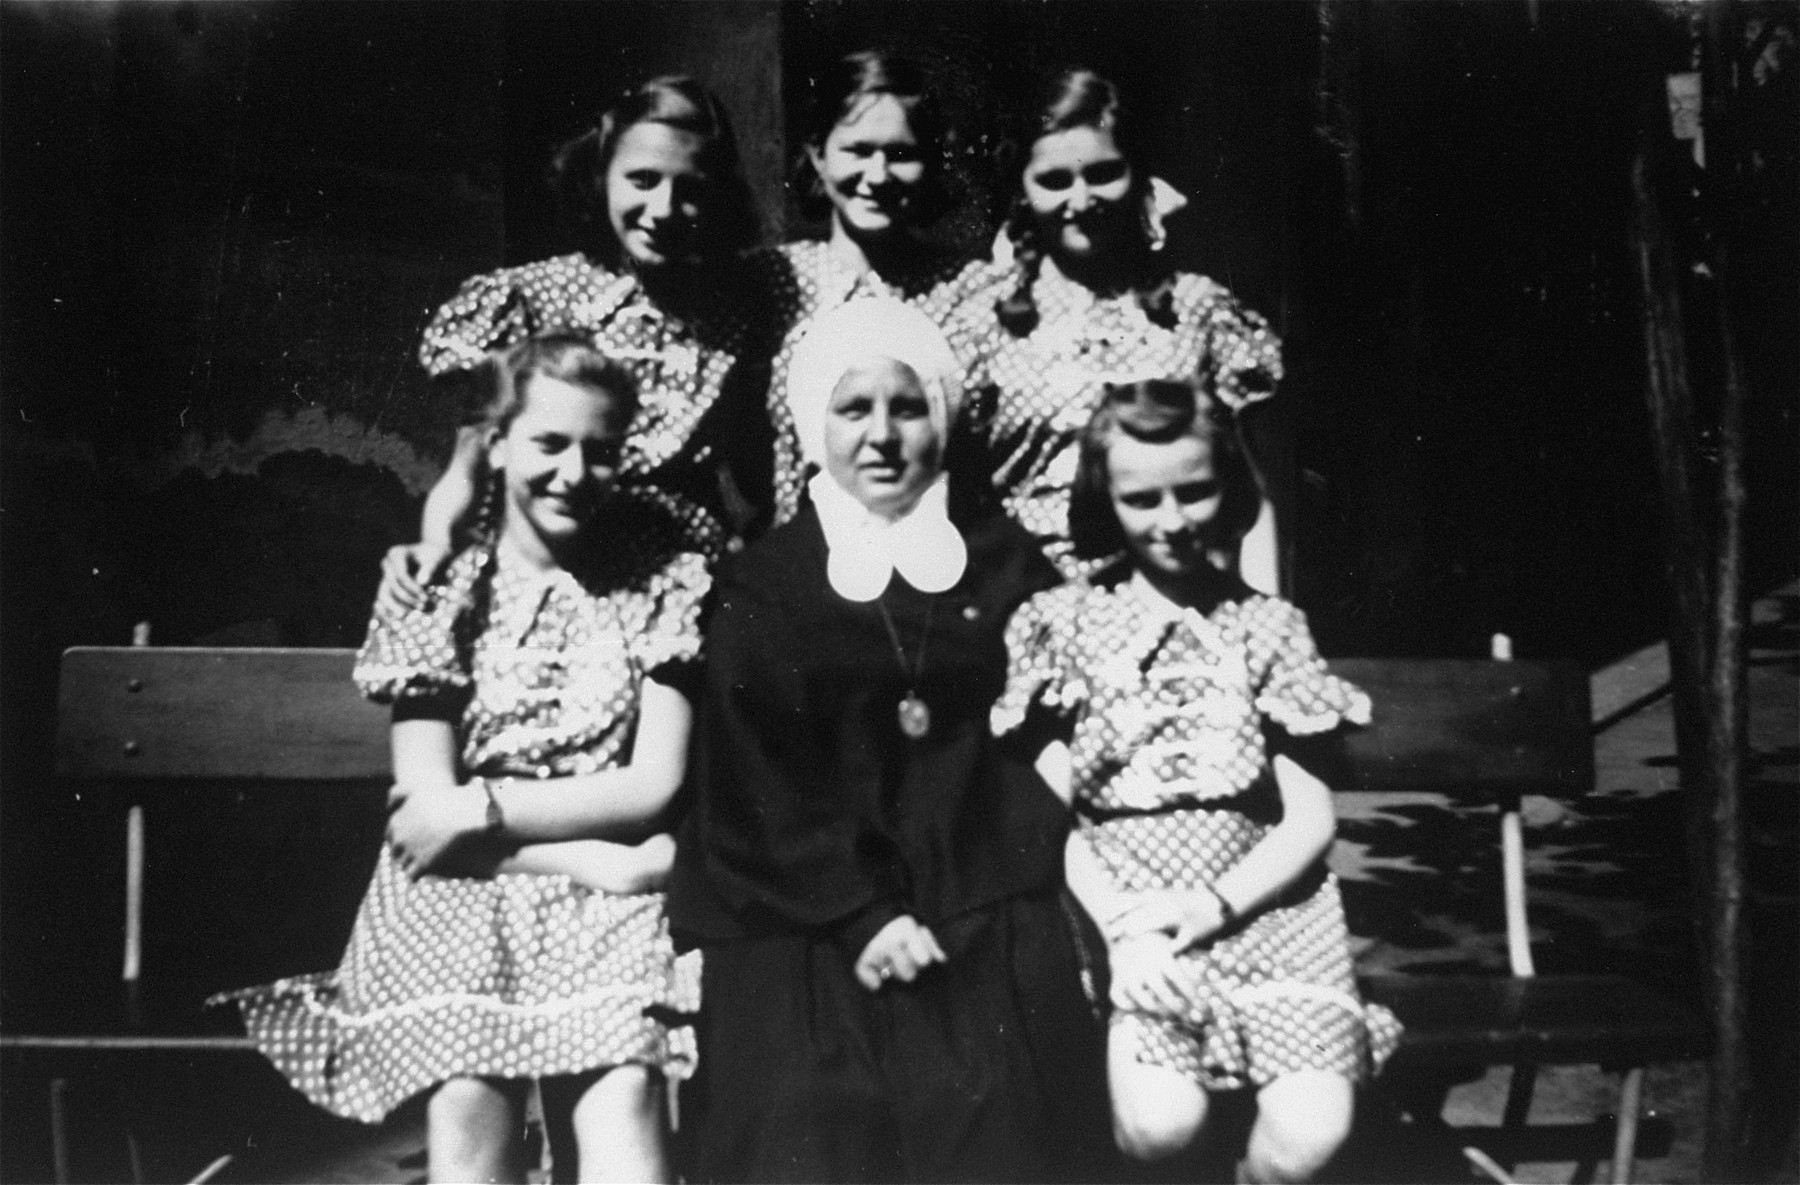 Dorottya Dezsoefi (second row, right) and her twin sister Ida Marianne (first row, left) pose with a nun and other students outside of the convent school where they were hidden for two years.